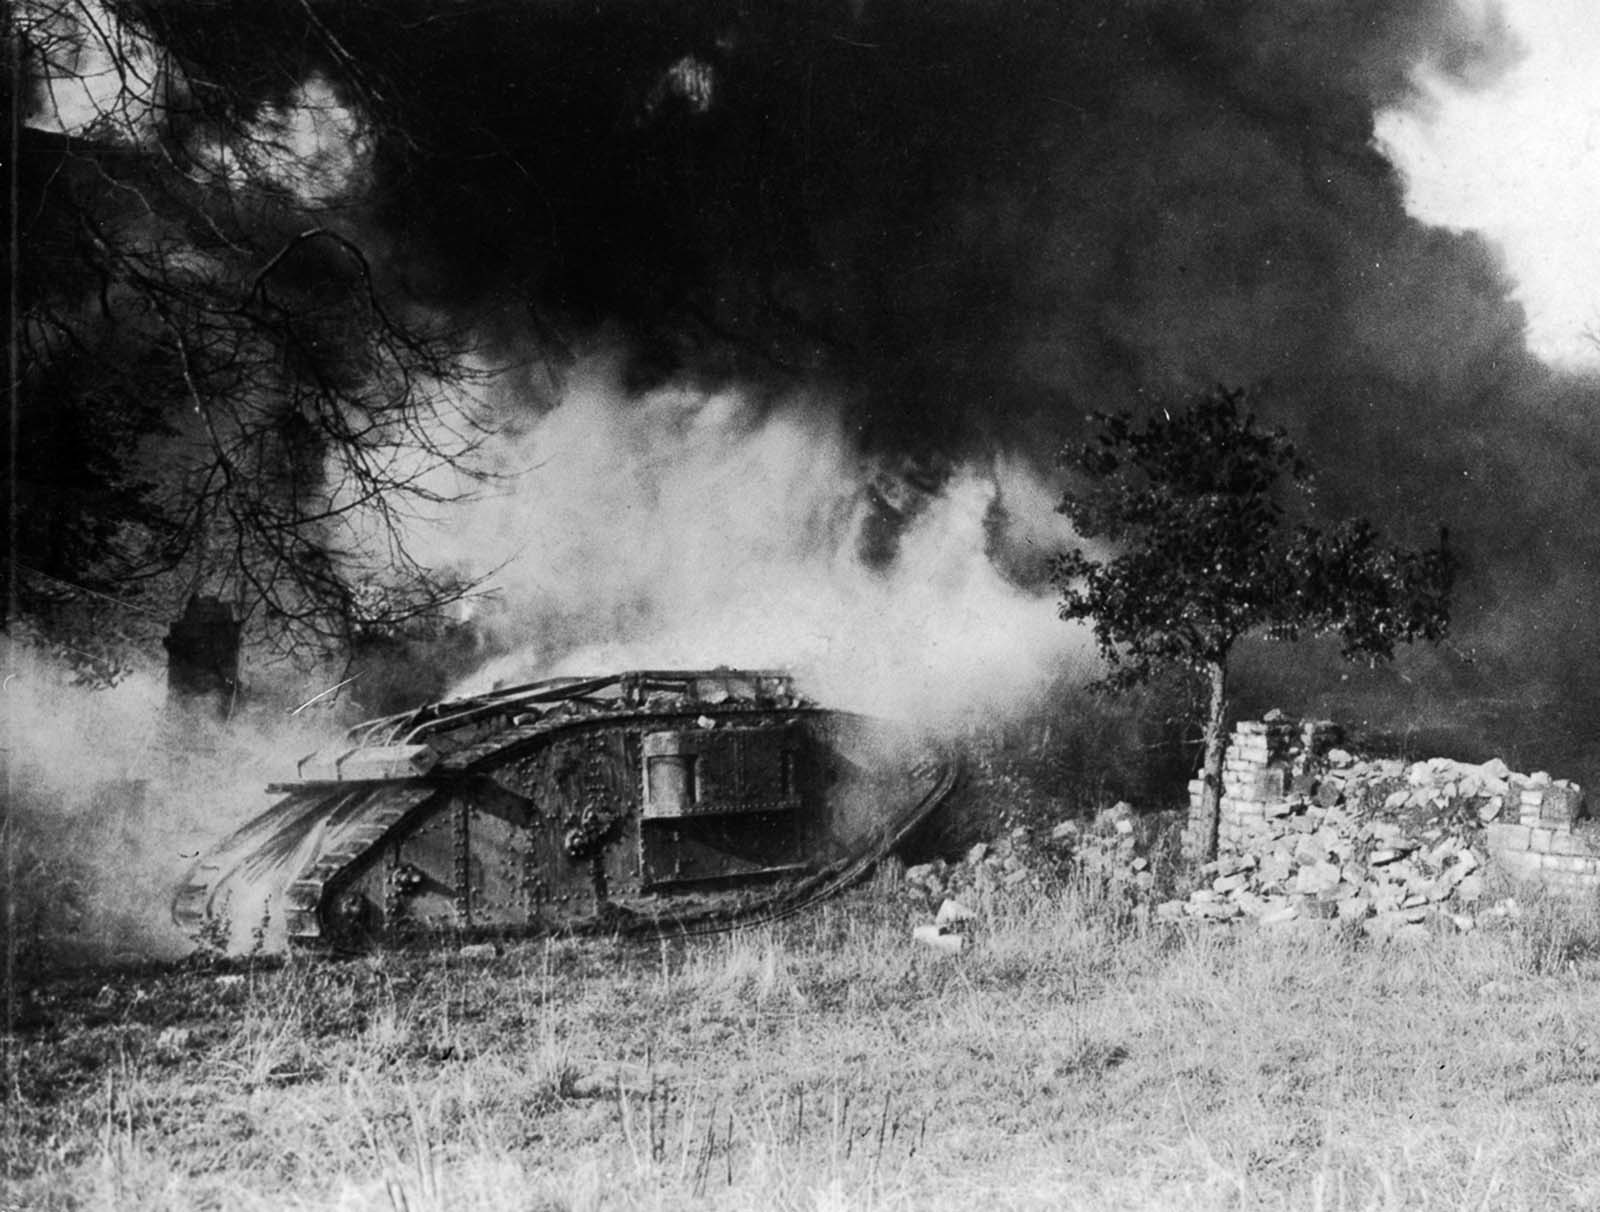 A British tank burns after being hit by a flamethrower. 1918.